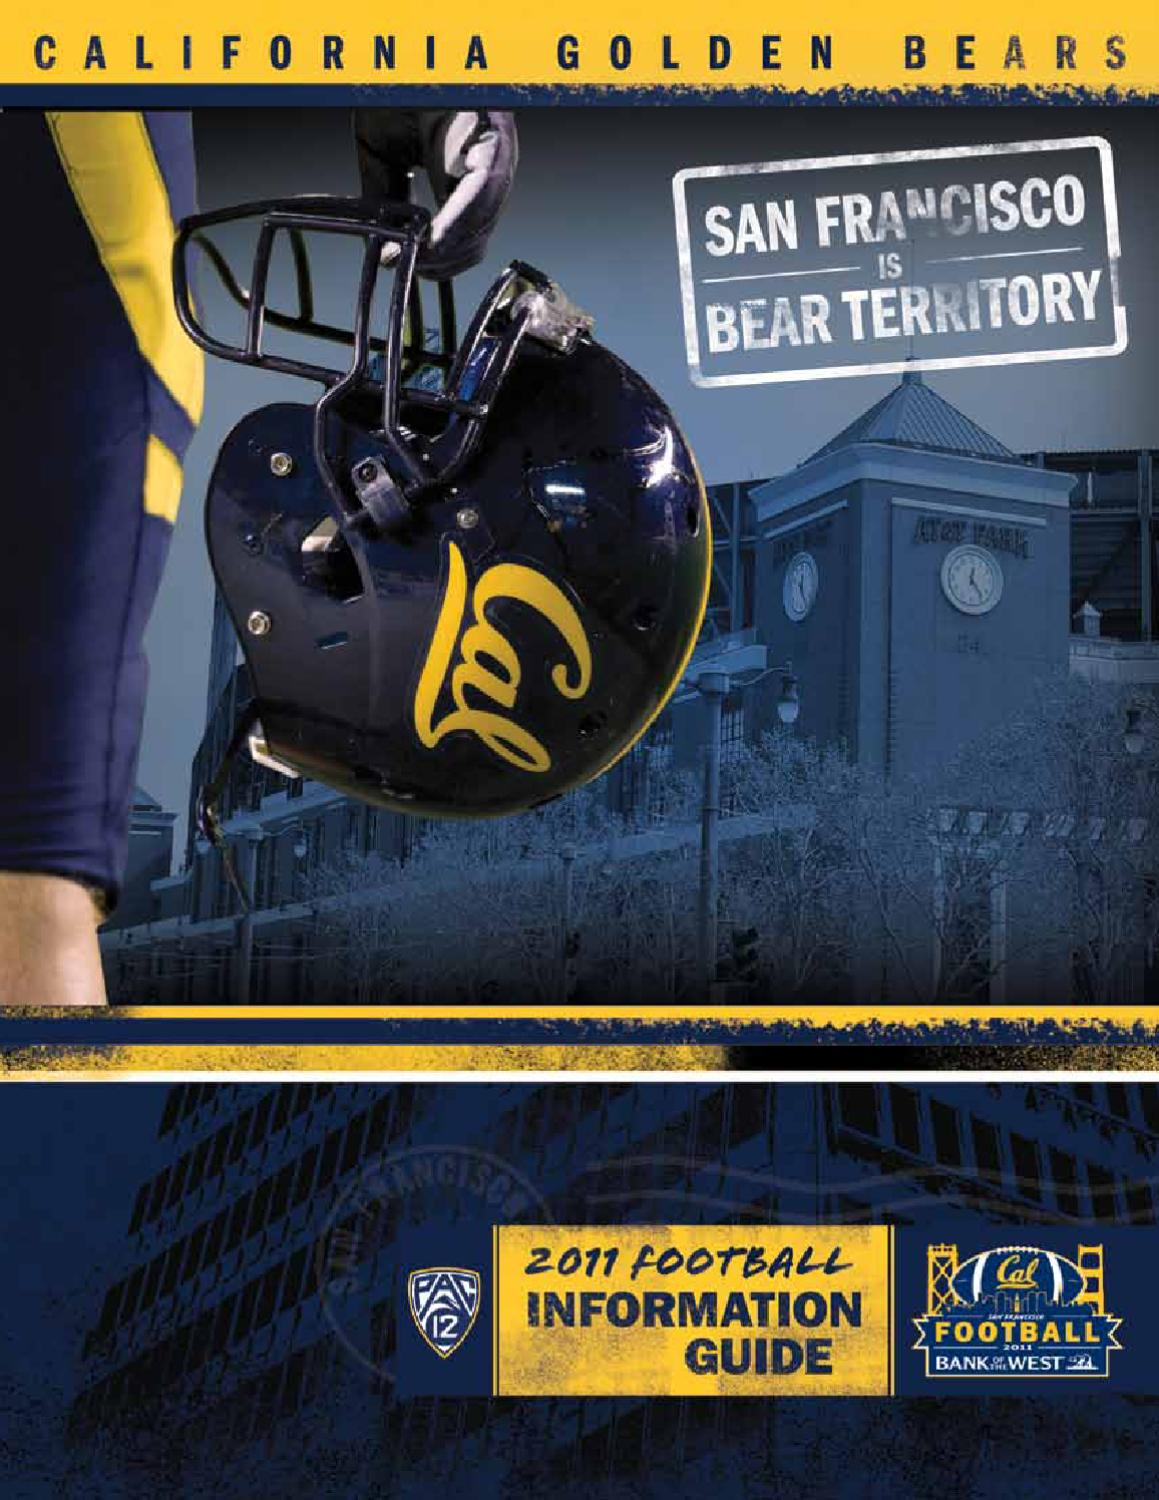 9c439d62d6a66c 2011 California Football Information Guide by Cal Media Relations - issuu